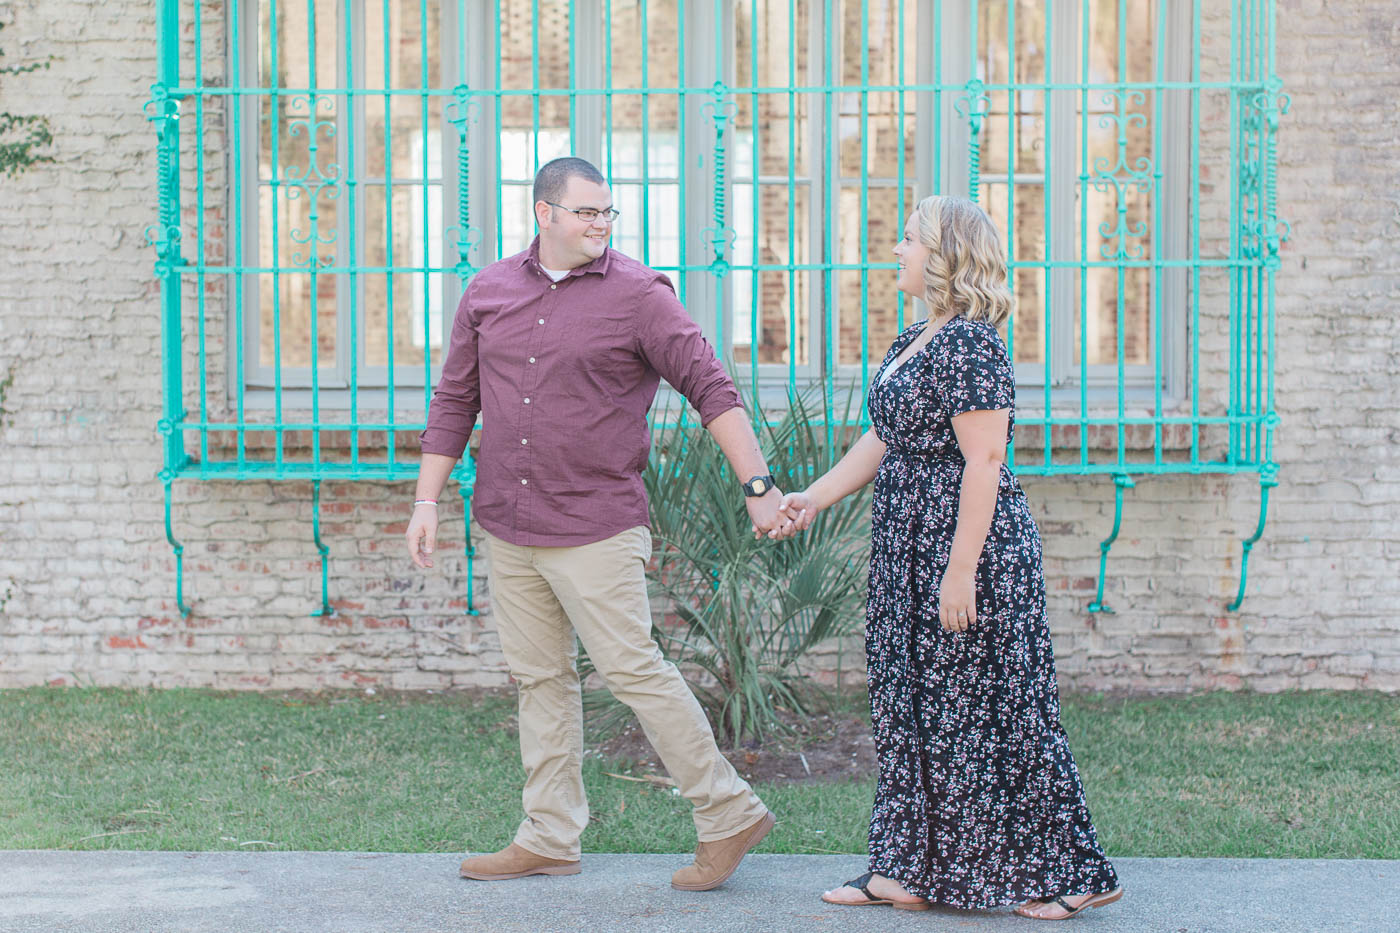 Huntington Beach State Park Engagement Session|Jaymee and Andrew